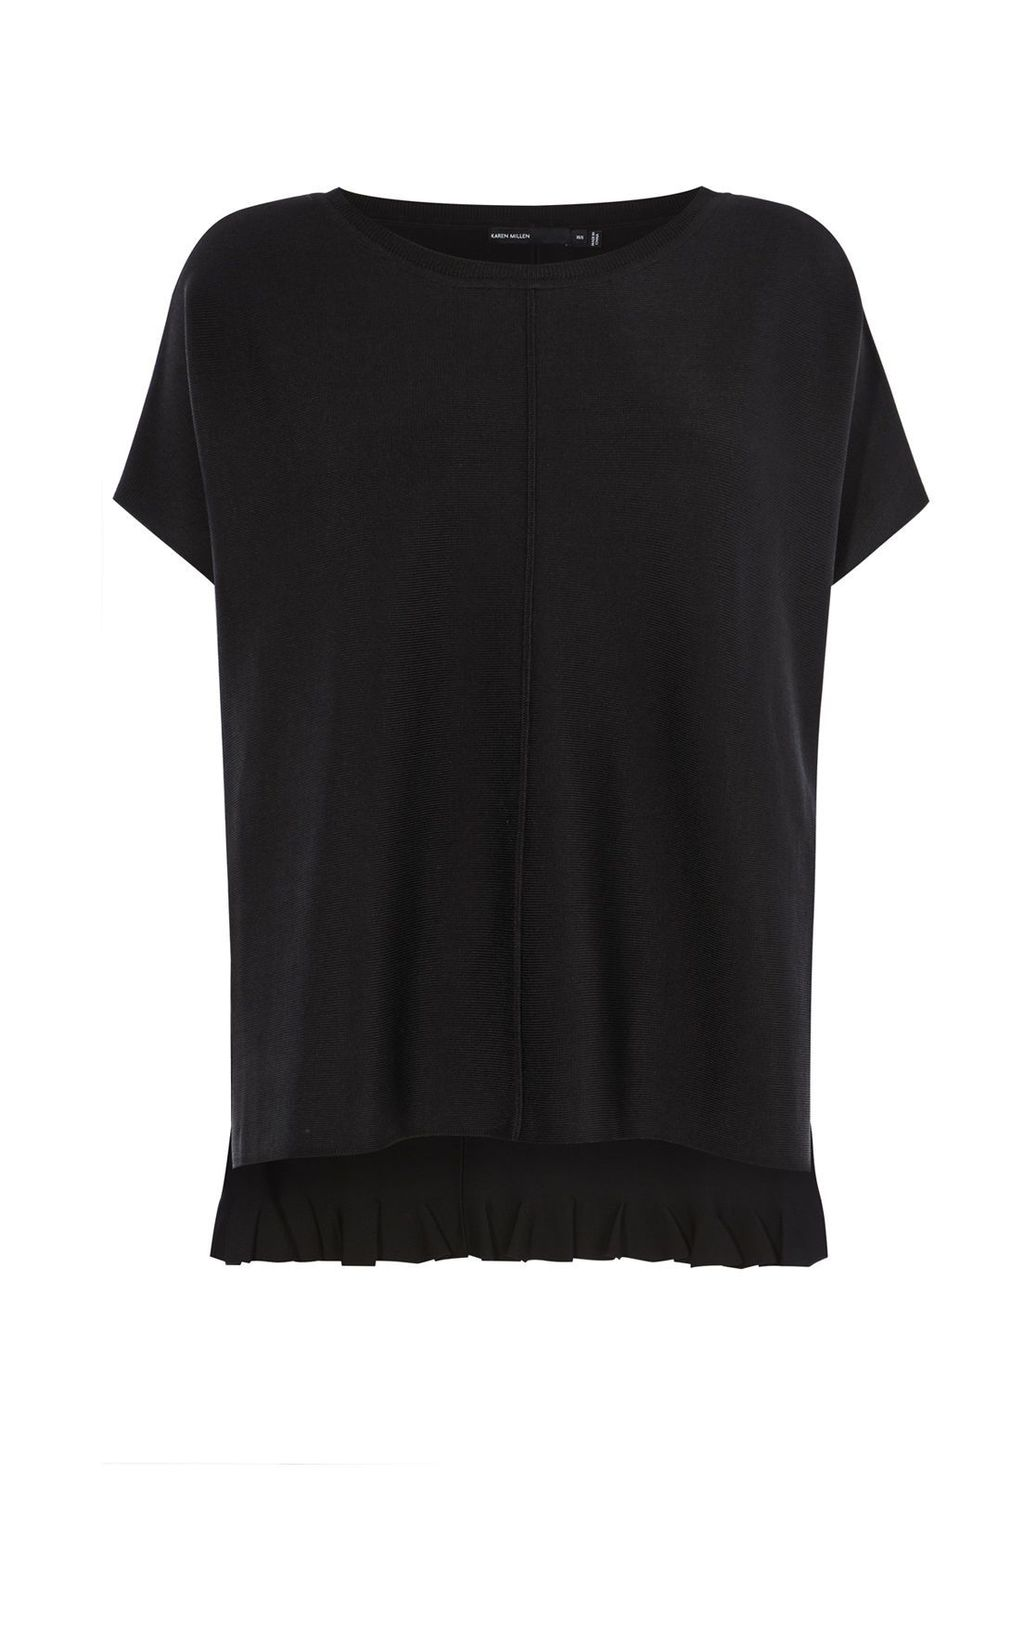 Frill Back Knit, Black - pattern: plain; style: standard; predominant colour: black; occasions: casual; length: standard; fit: standard fit; neckline: crew; sleeve length: short sleeve; sleeve style: standard; pattern type: fabric; texture group: jersey - stretchy/drapey; fibres: viscose/rayon - mix; season: s/s 2016; wardrobe: highlight